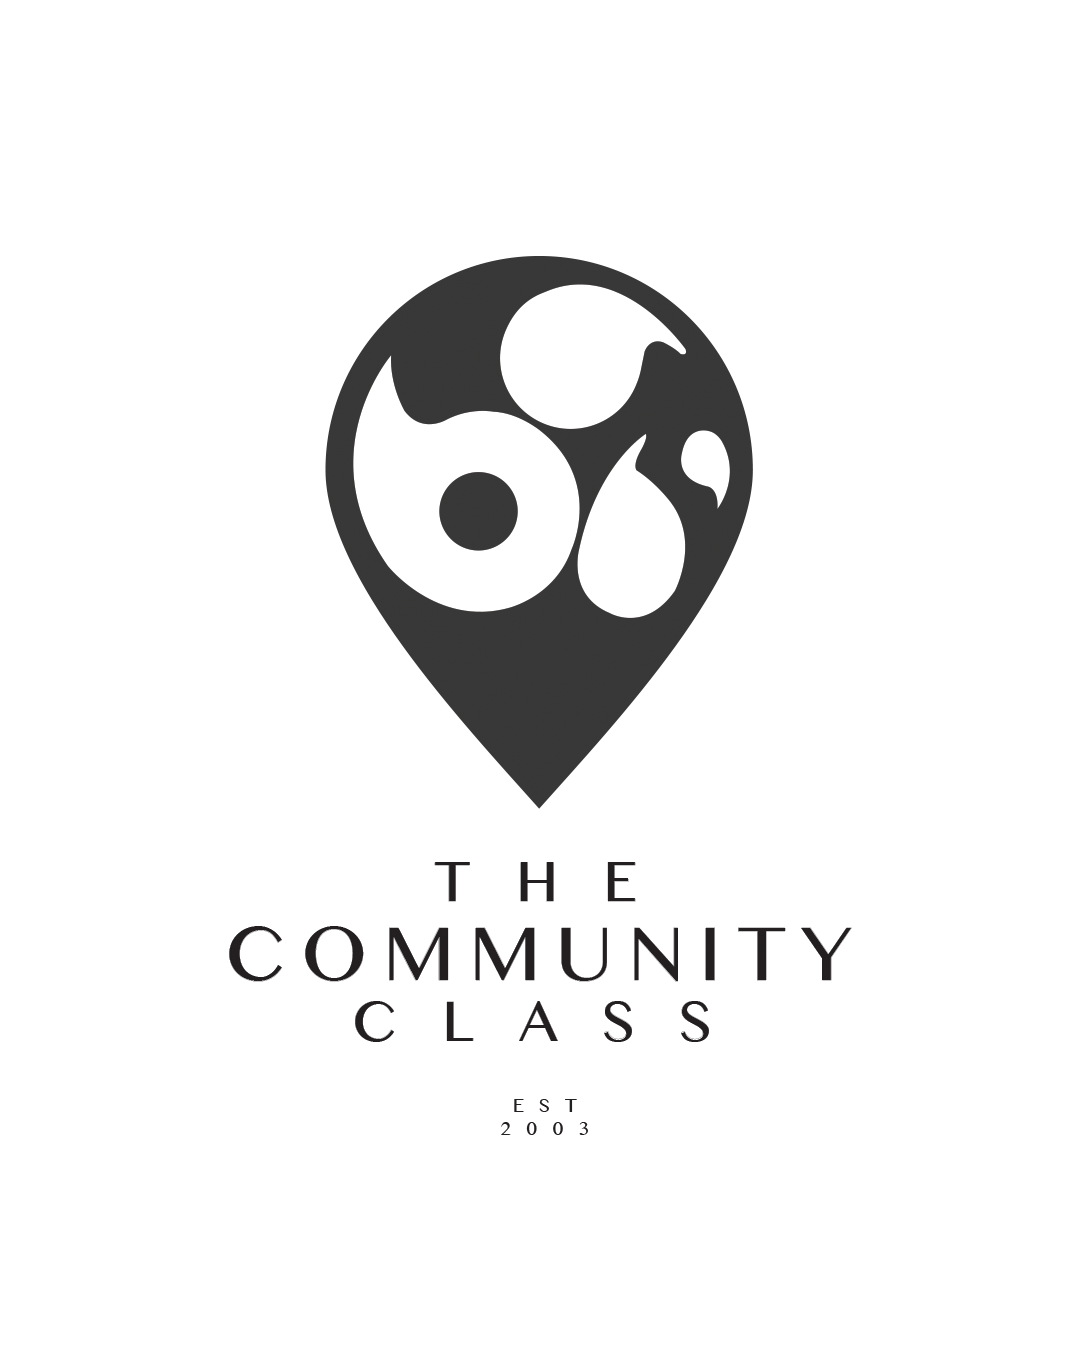 THE COMMUNITY CLASS